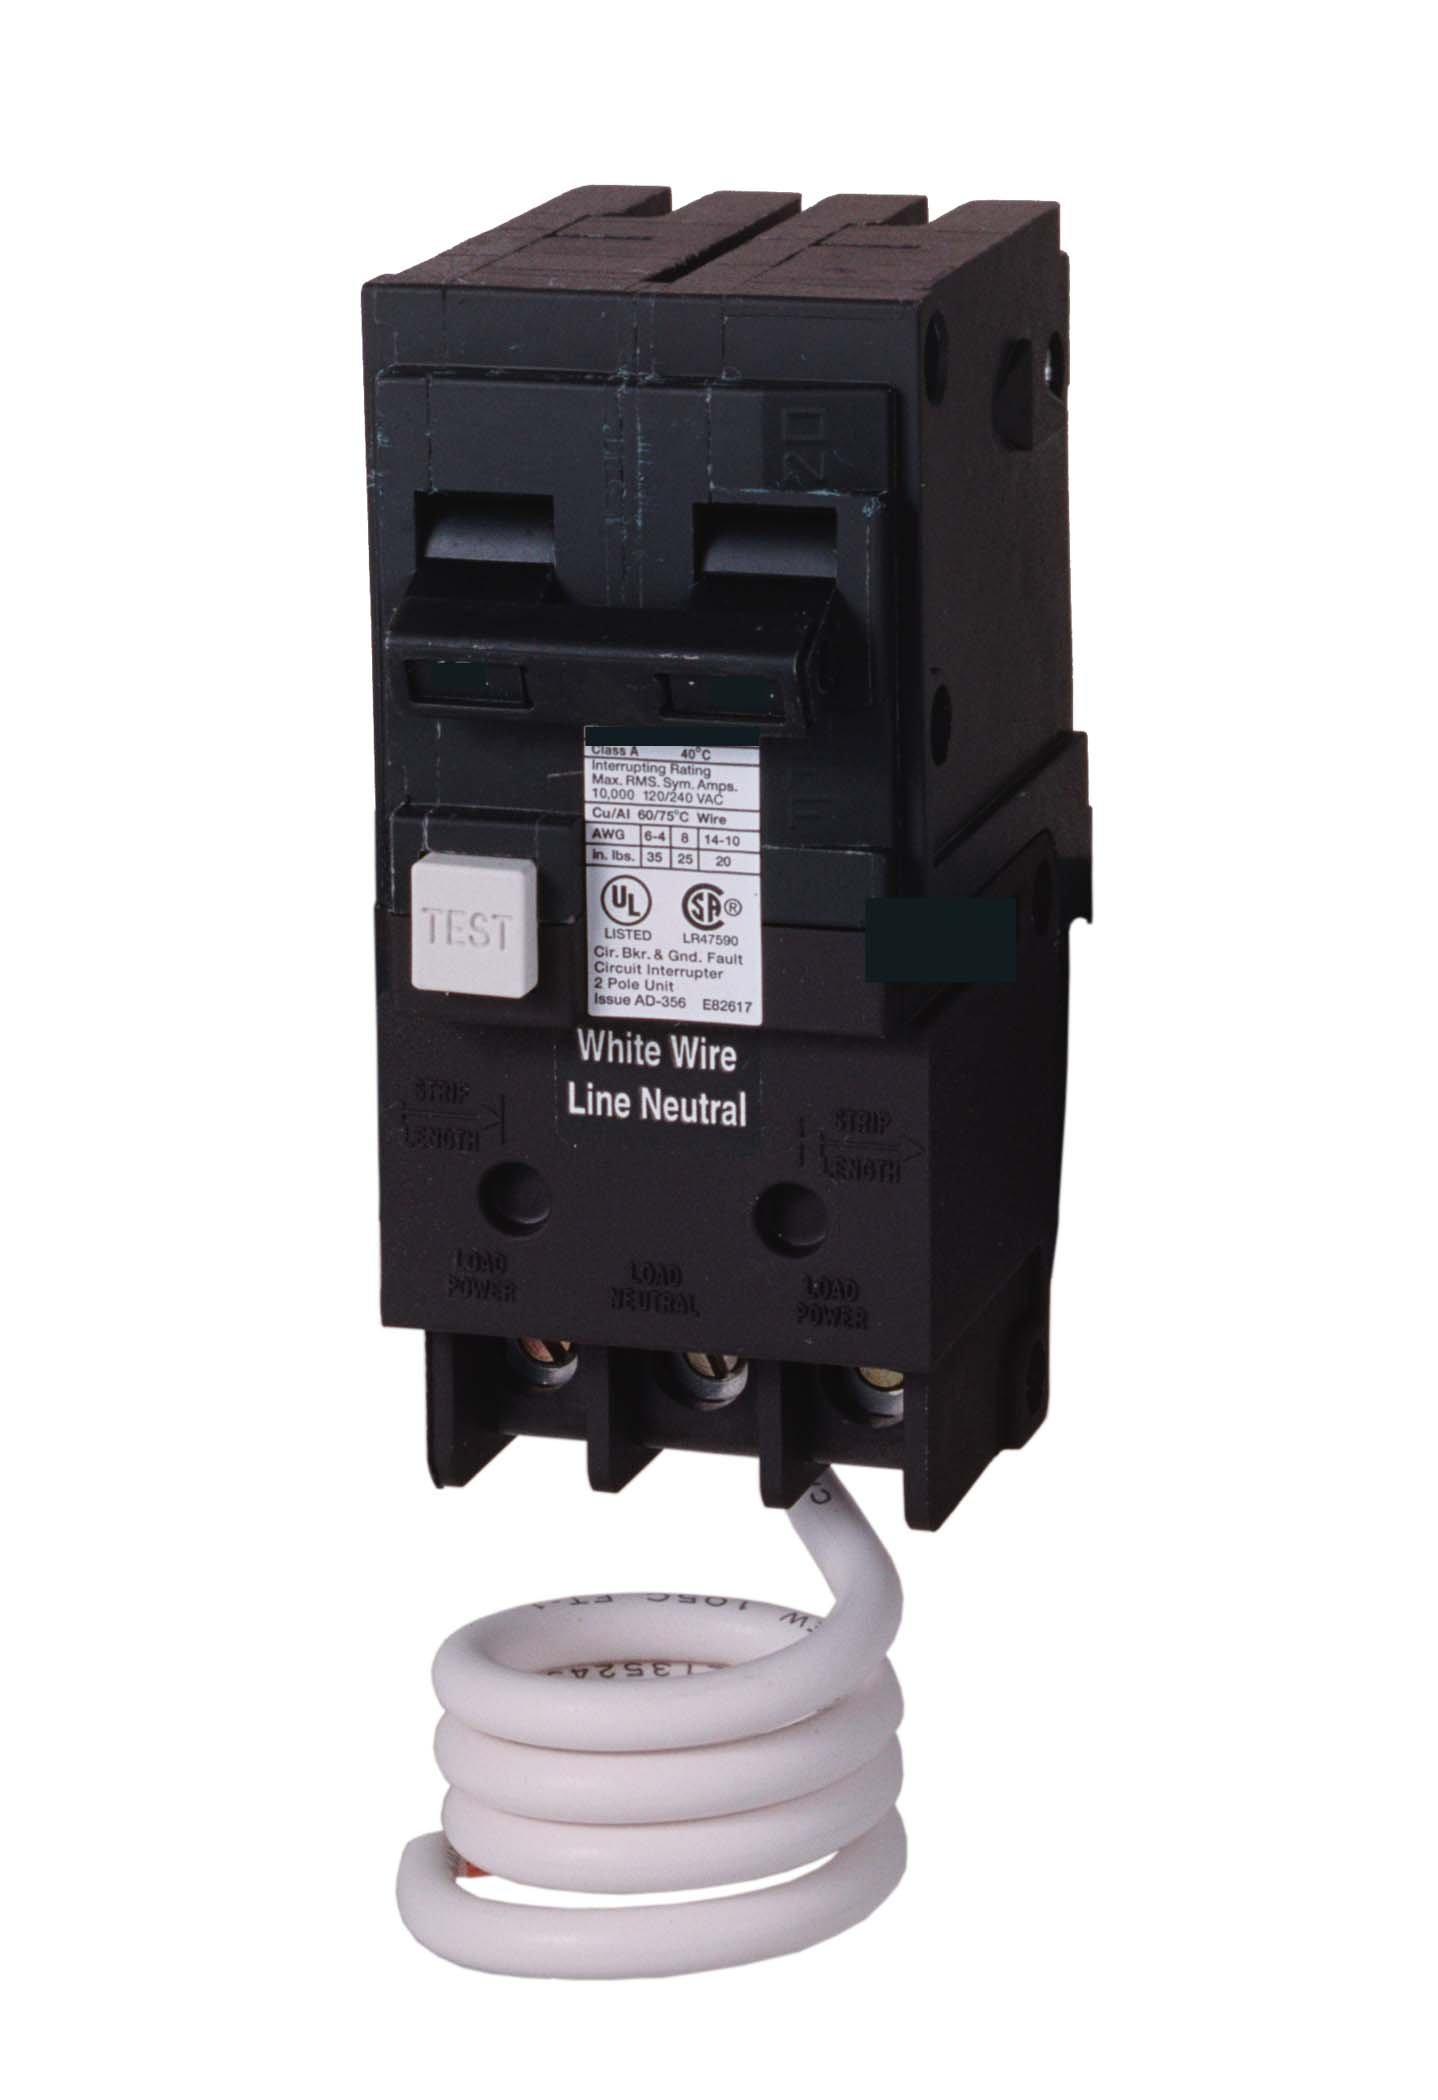 Murray MP230EG 30-Amp Double Pole 120/240-Volt Group Fault Equipment Protection Circuit Breaker